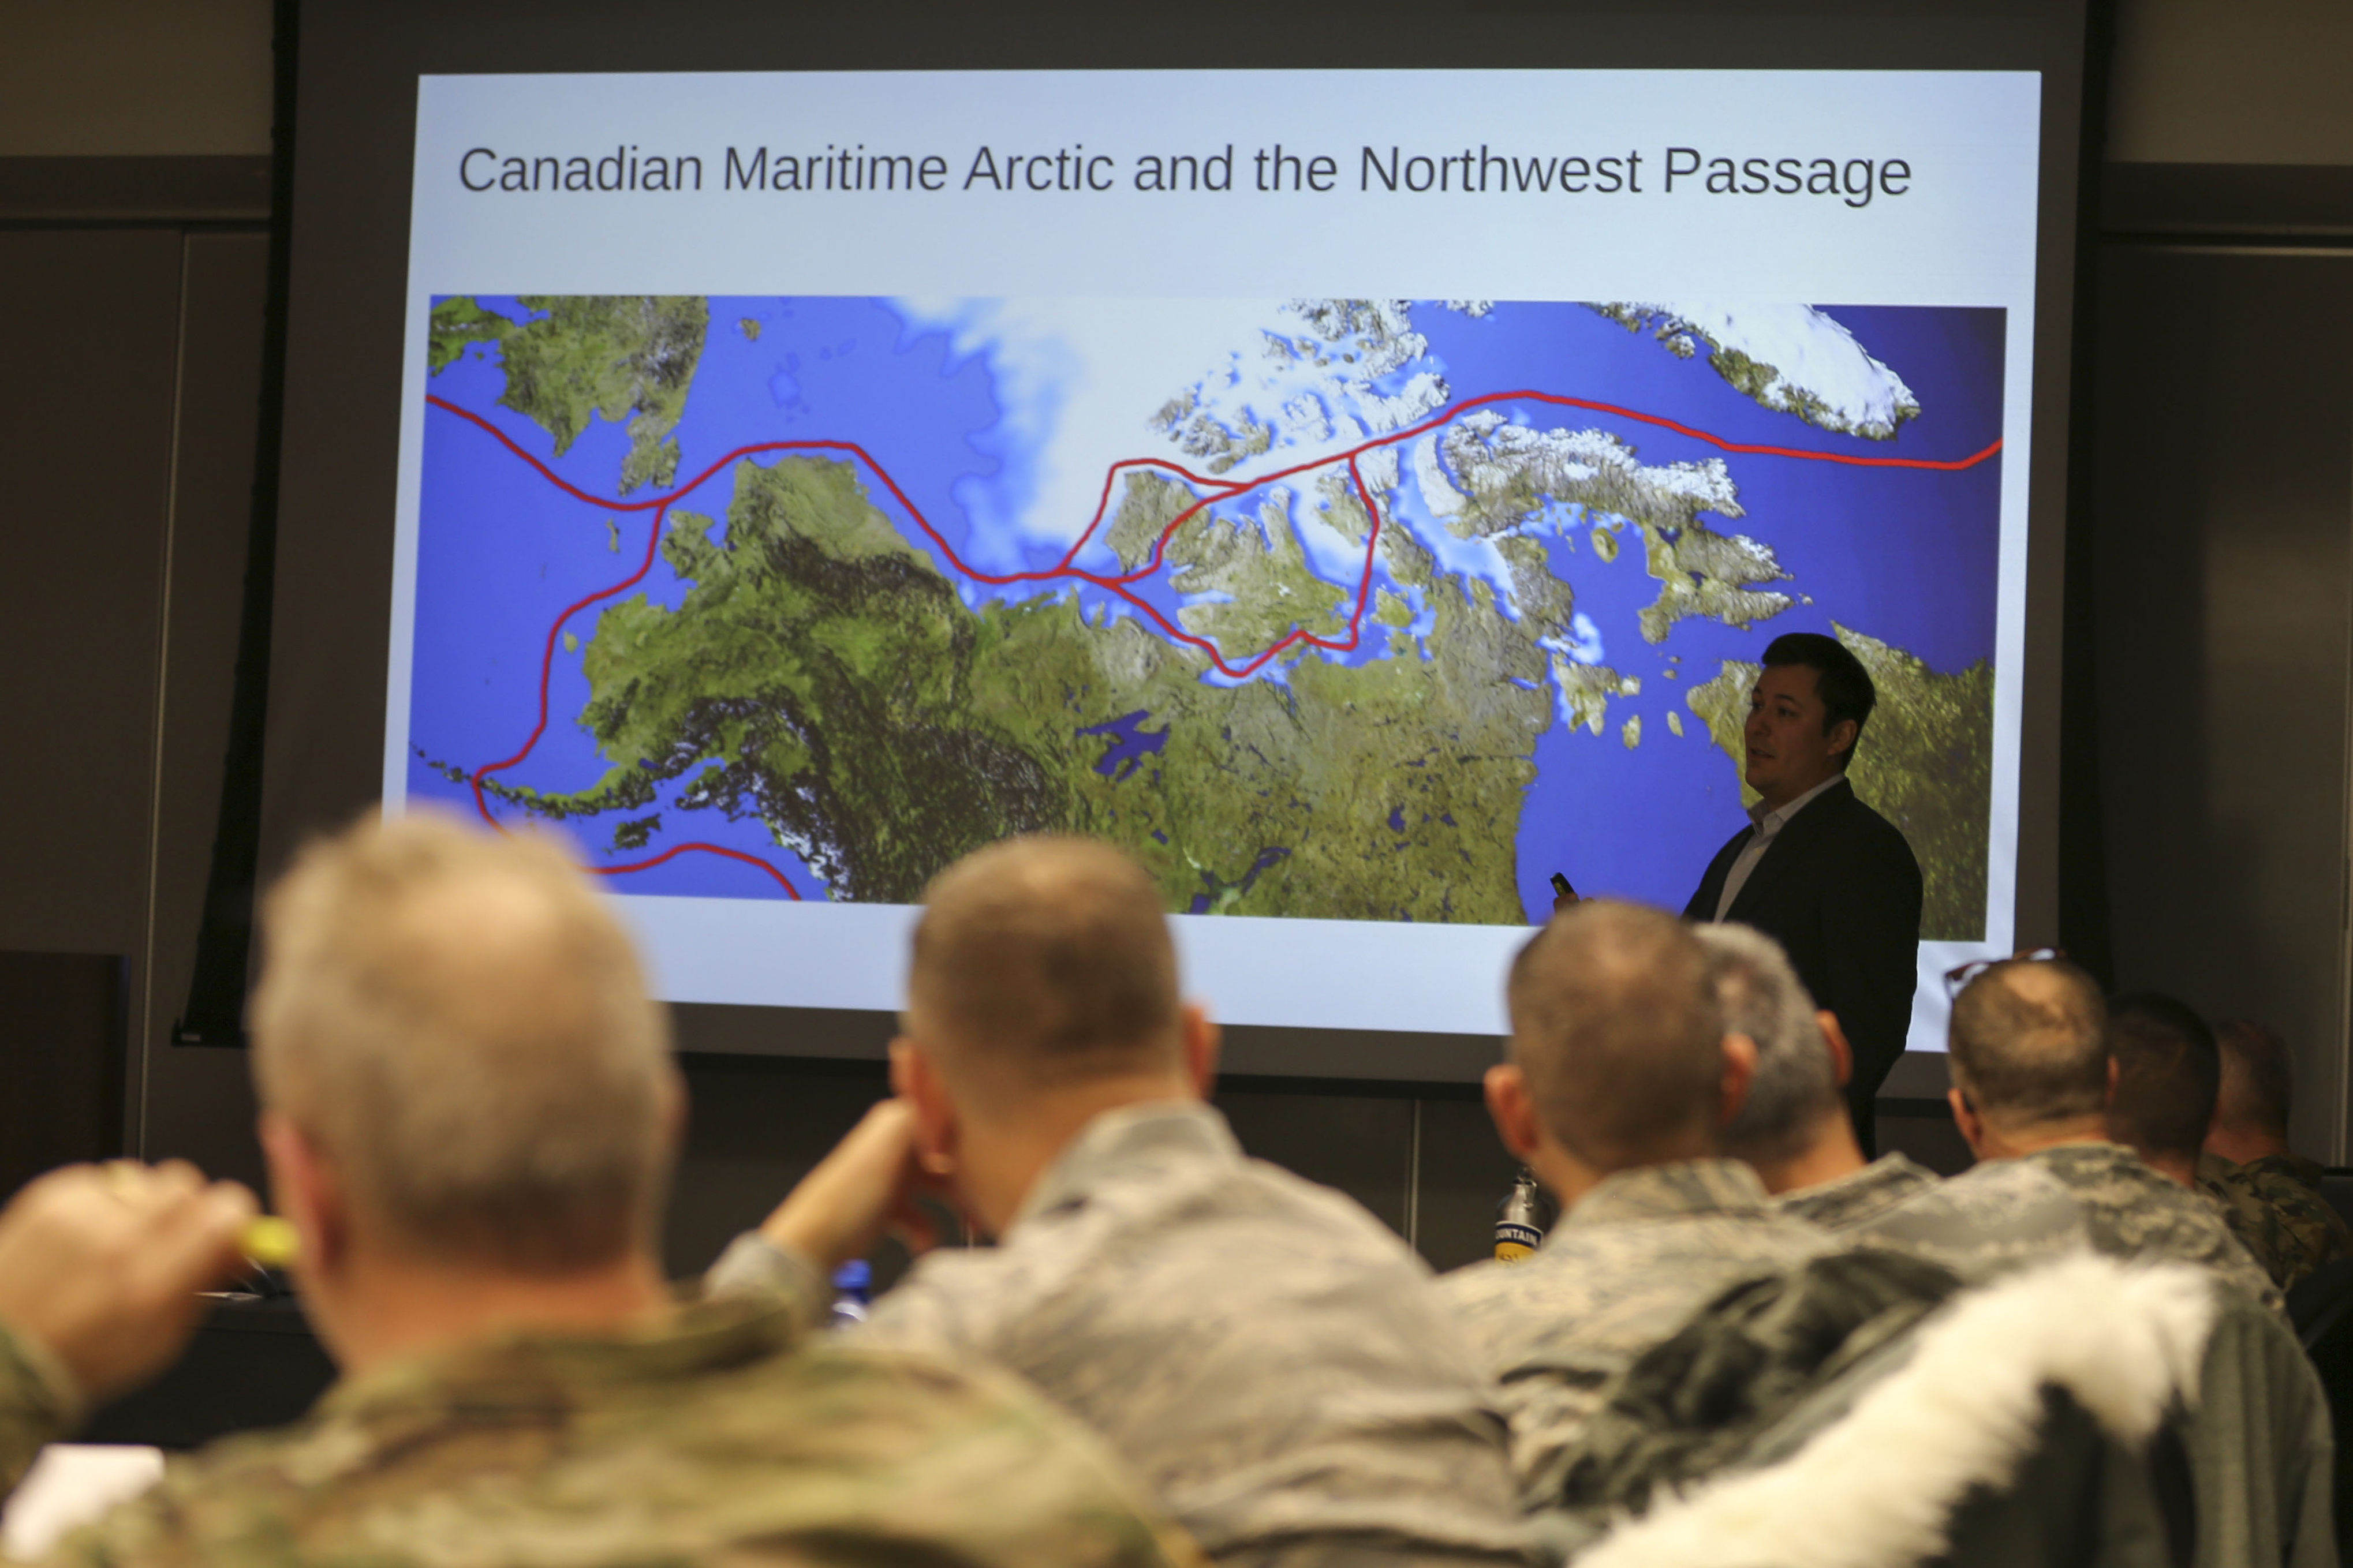 Increased activity in warming Arctic piques interest of Lower 48 National Guard leaders